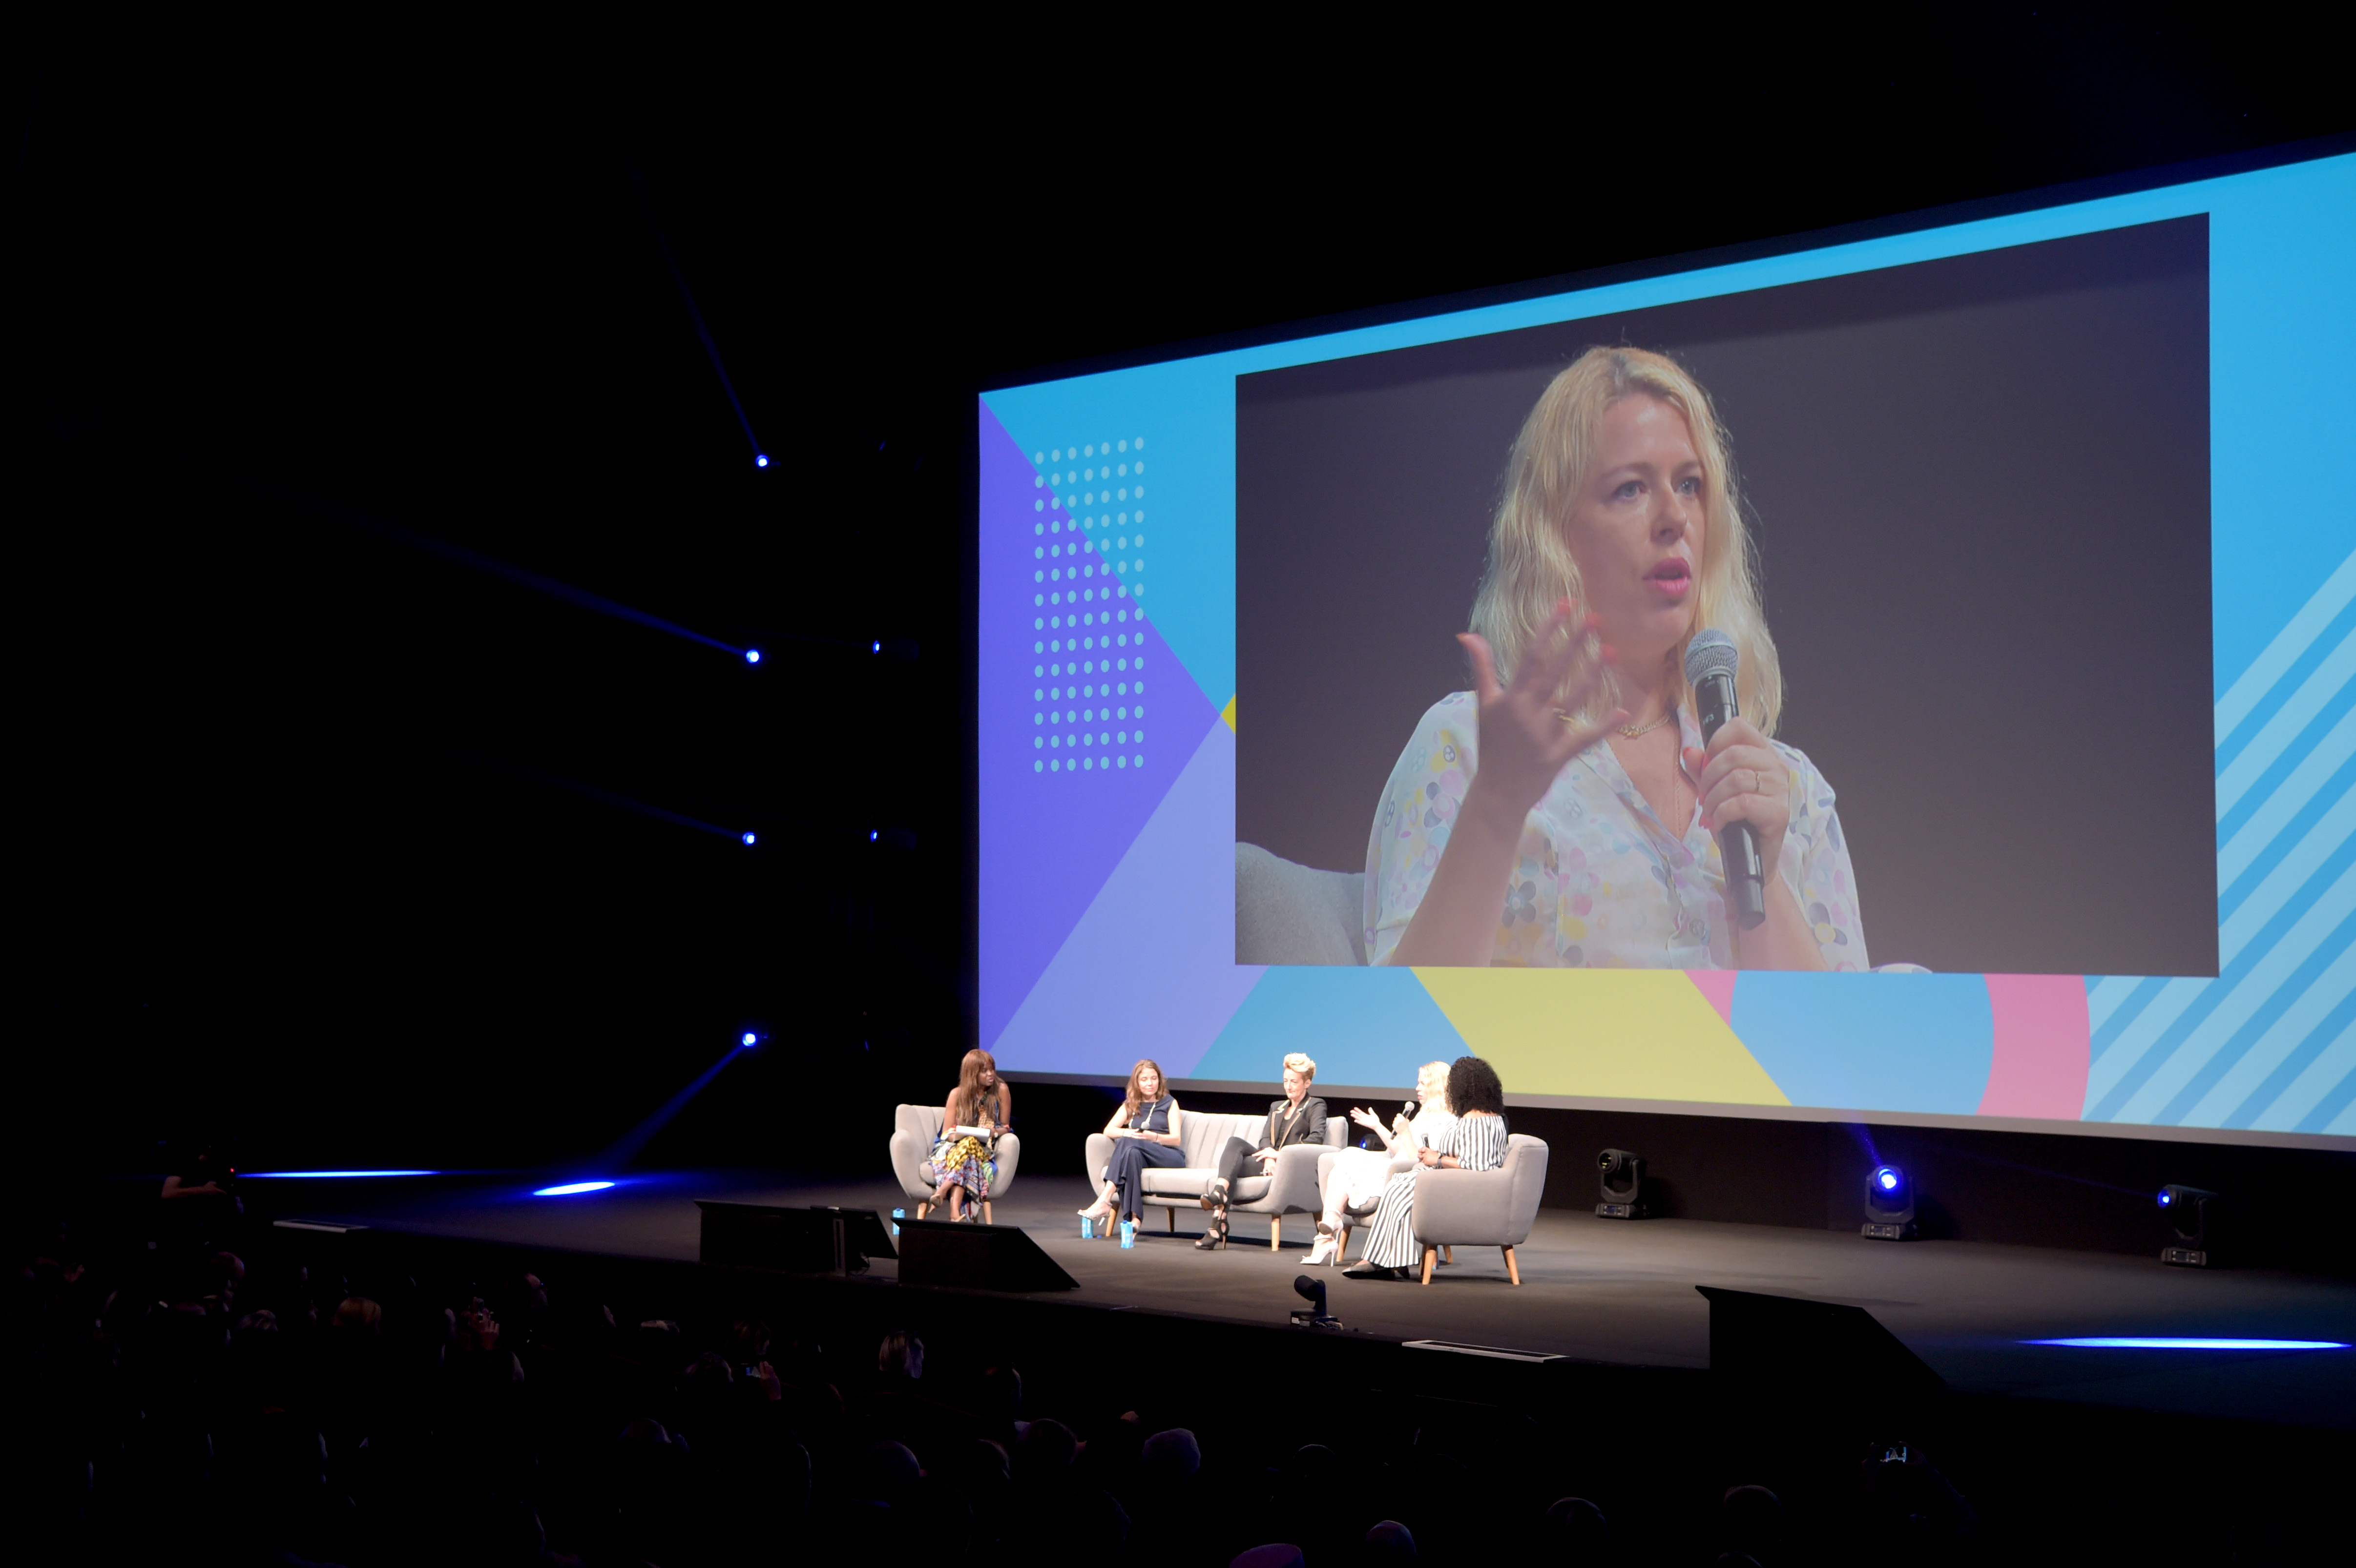 SHONDA RHIMES AND DOVE CALL ON BRANDS TO TAKE RESPONSIBILITY FOR IMAGES THEY USE IN MEDIA AND ADVERTISING AT 'TIME TO STEP UP' PANEL IN CANNES